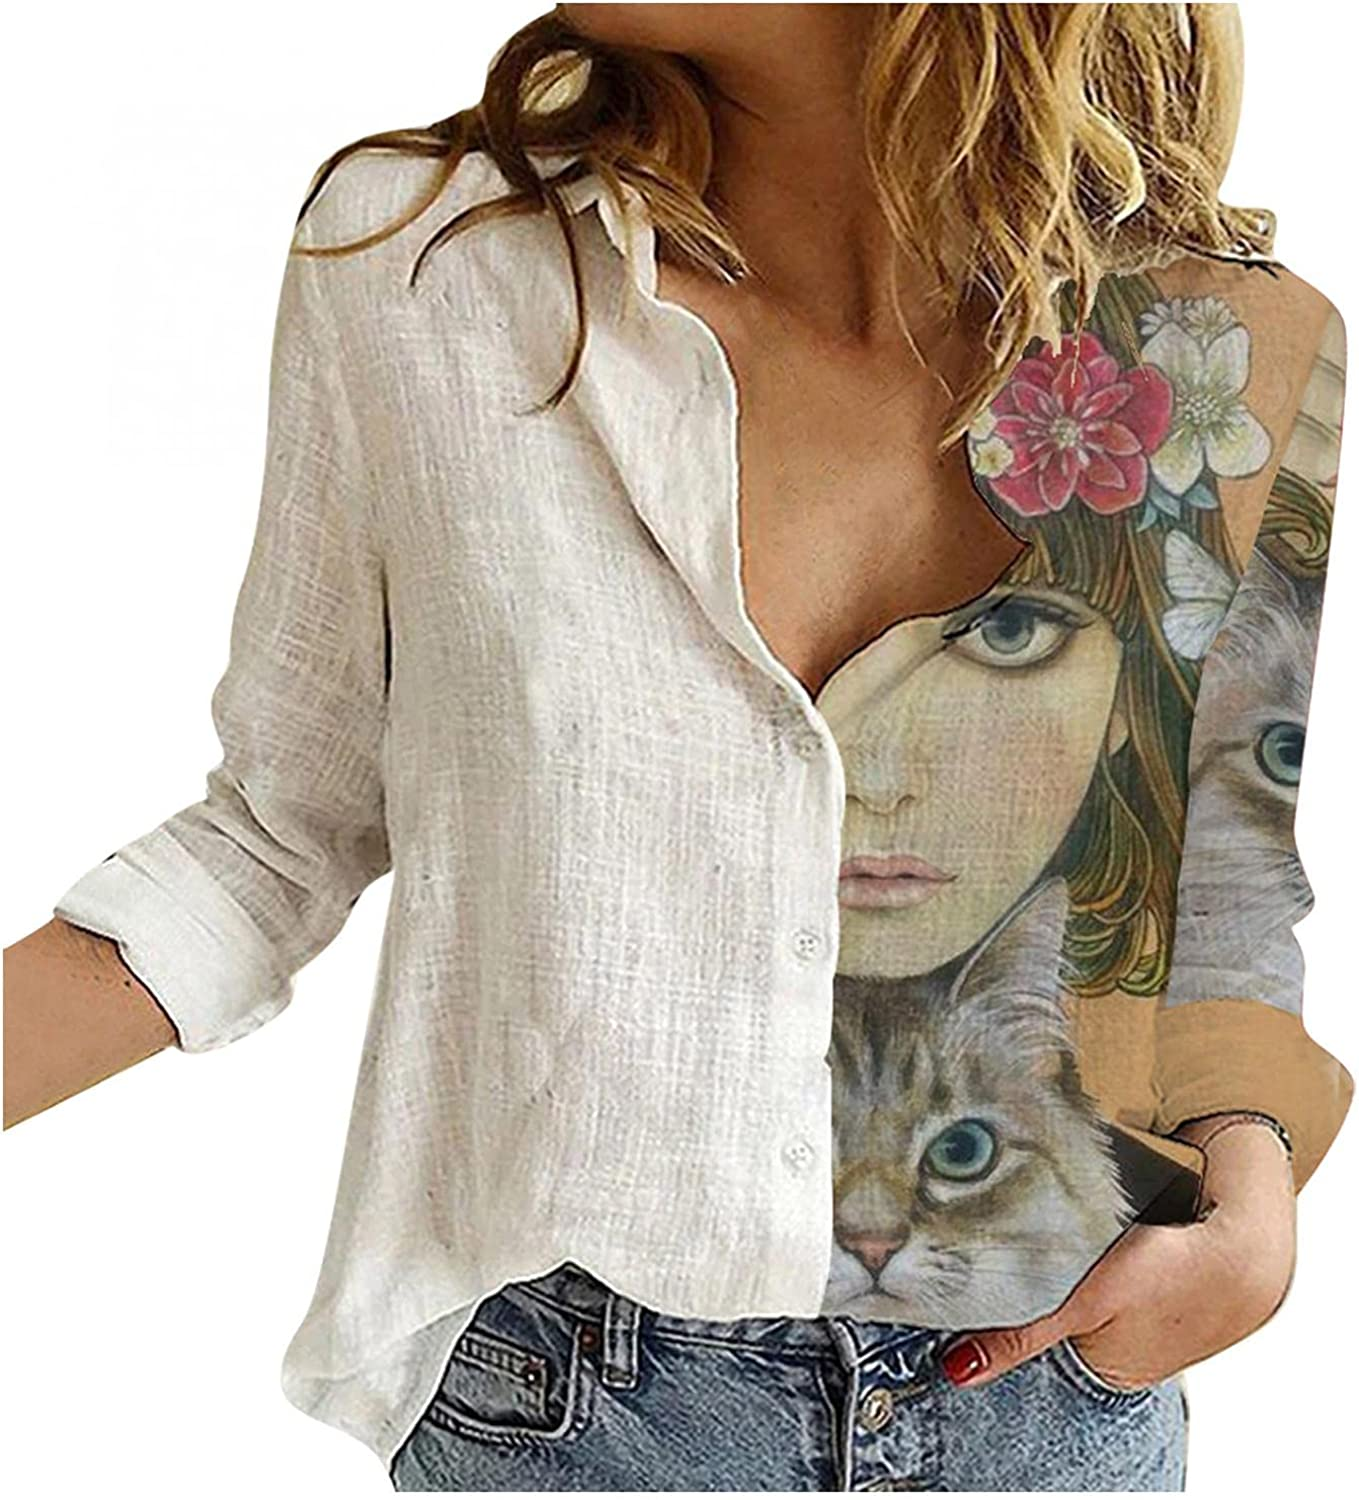 Aiouios Lightweight Sweatshirts for Women Graphic Button down Long Sleeve Shirt Floral Print Casual Loose Blouses Tops